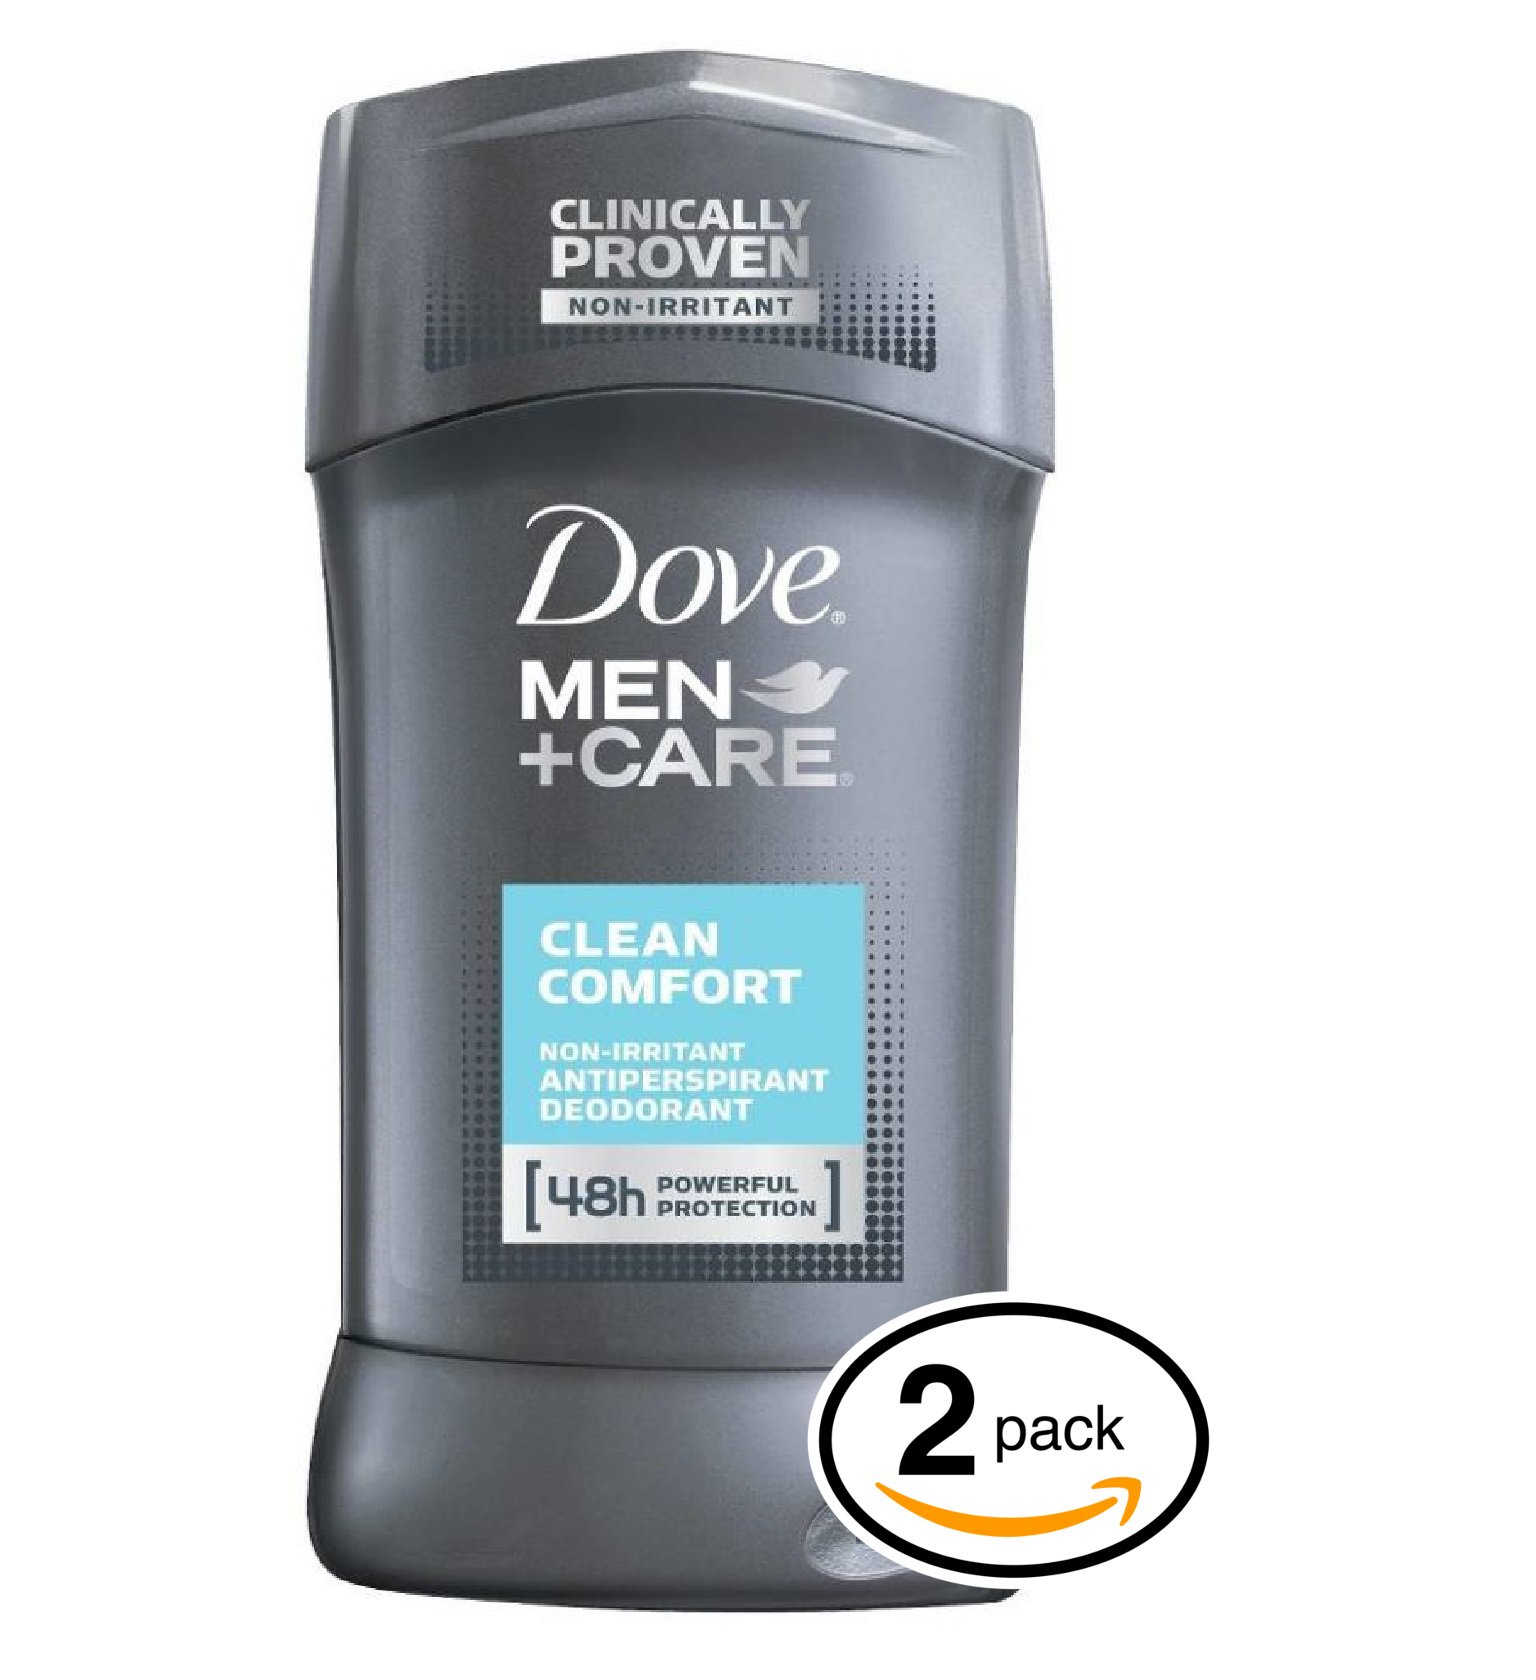 Dove MEN+CARE Clean Comfort Dry Antiperspirant & Deodorant (2.7-Ounce (Twin Pack), Clean Comfort)